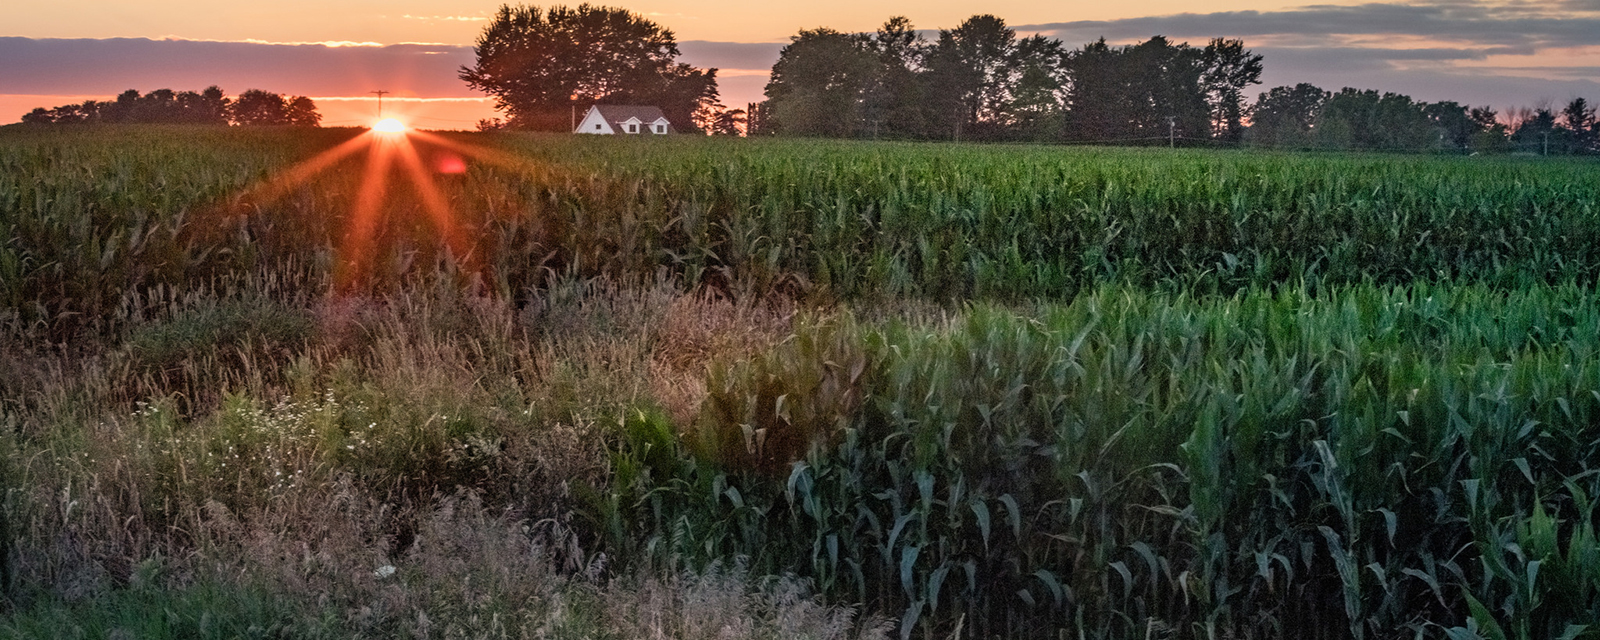 Sunset on a farm, with corn crops in the foreground and the farmhouse in the background